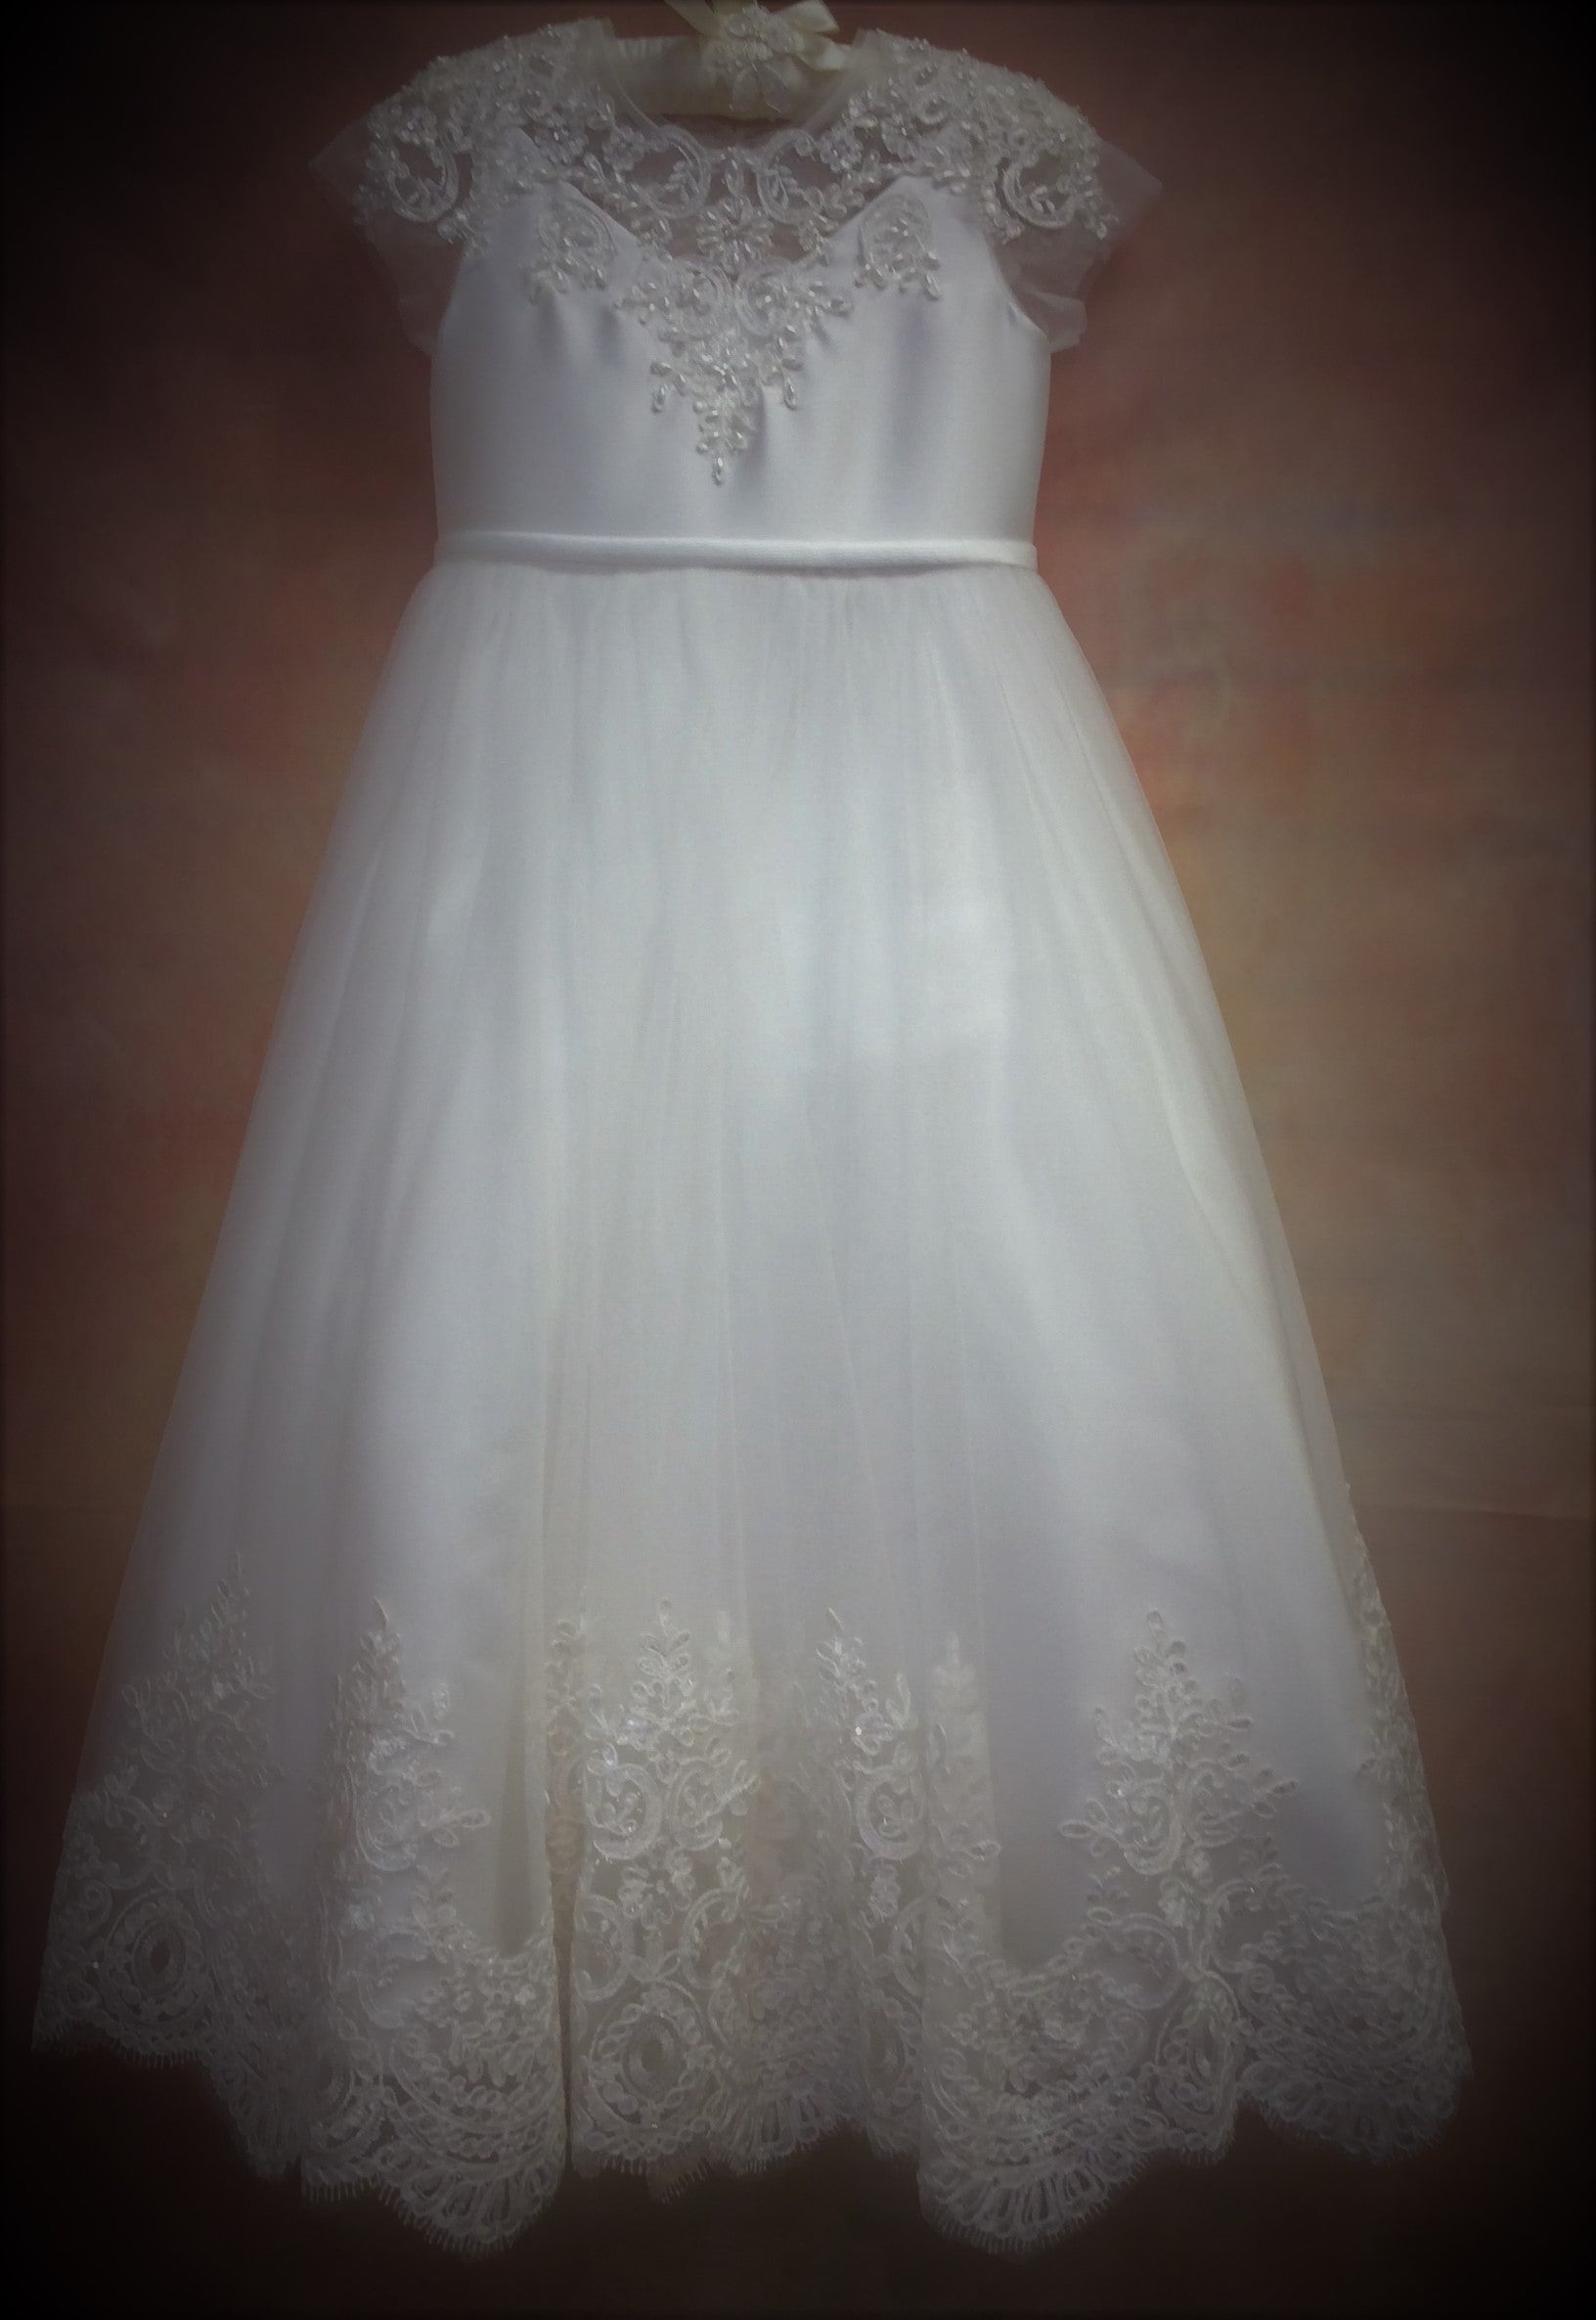 TU61 Designer Communion Dress - Nenes Lullaby Boutique Inc